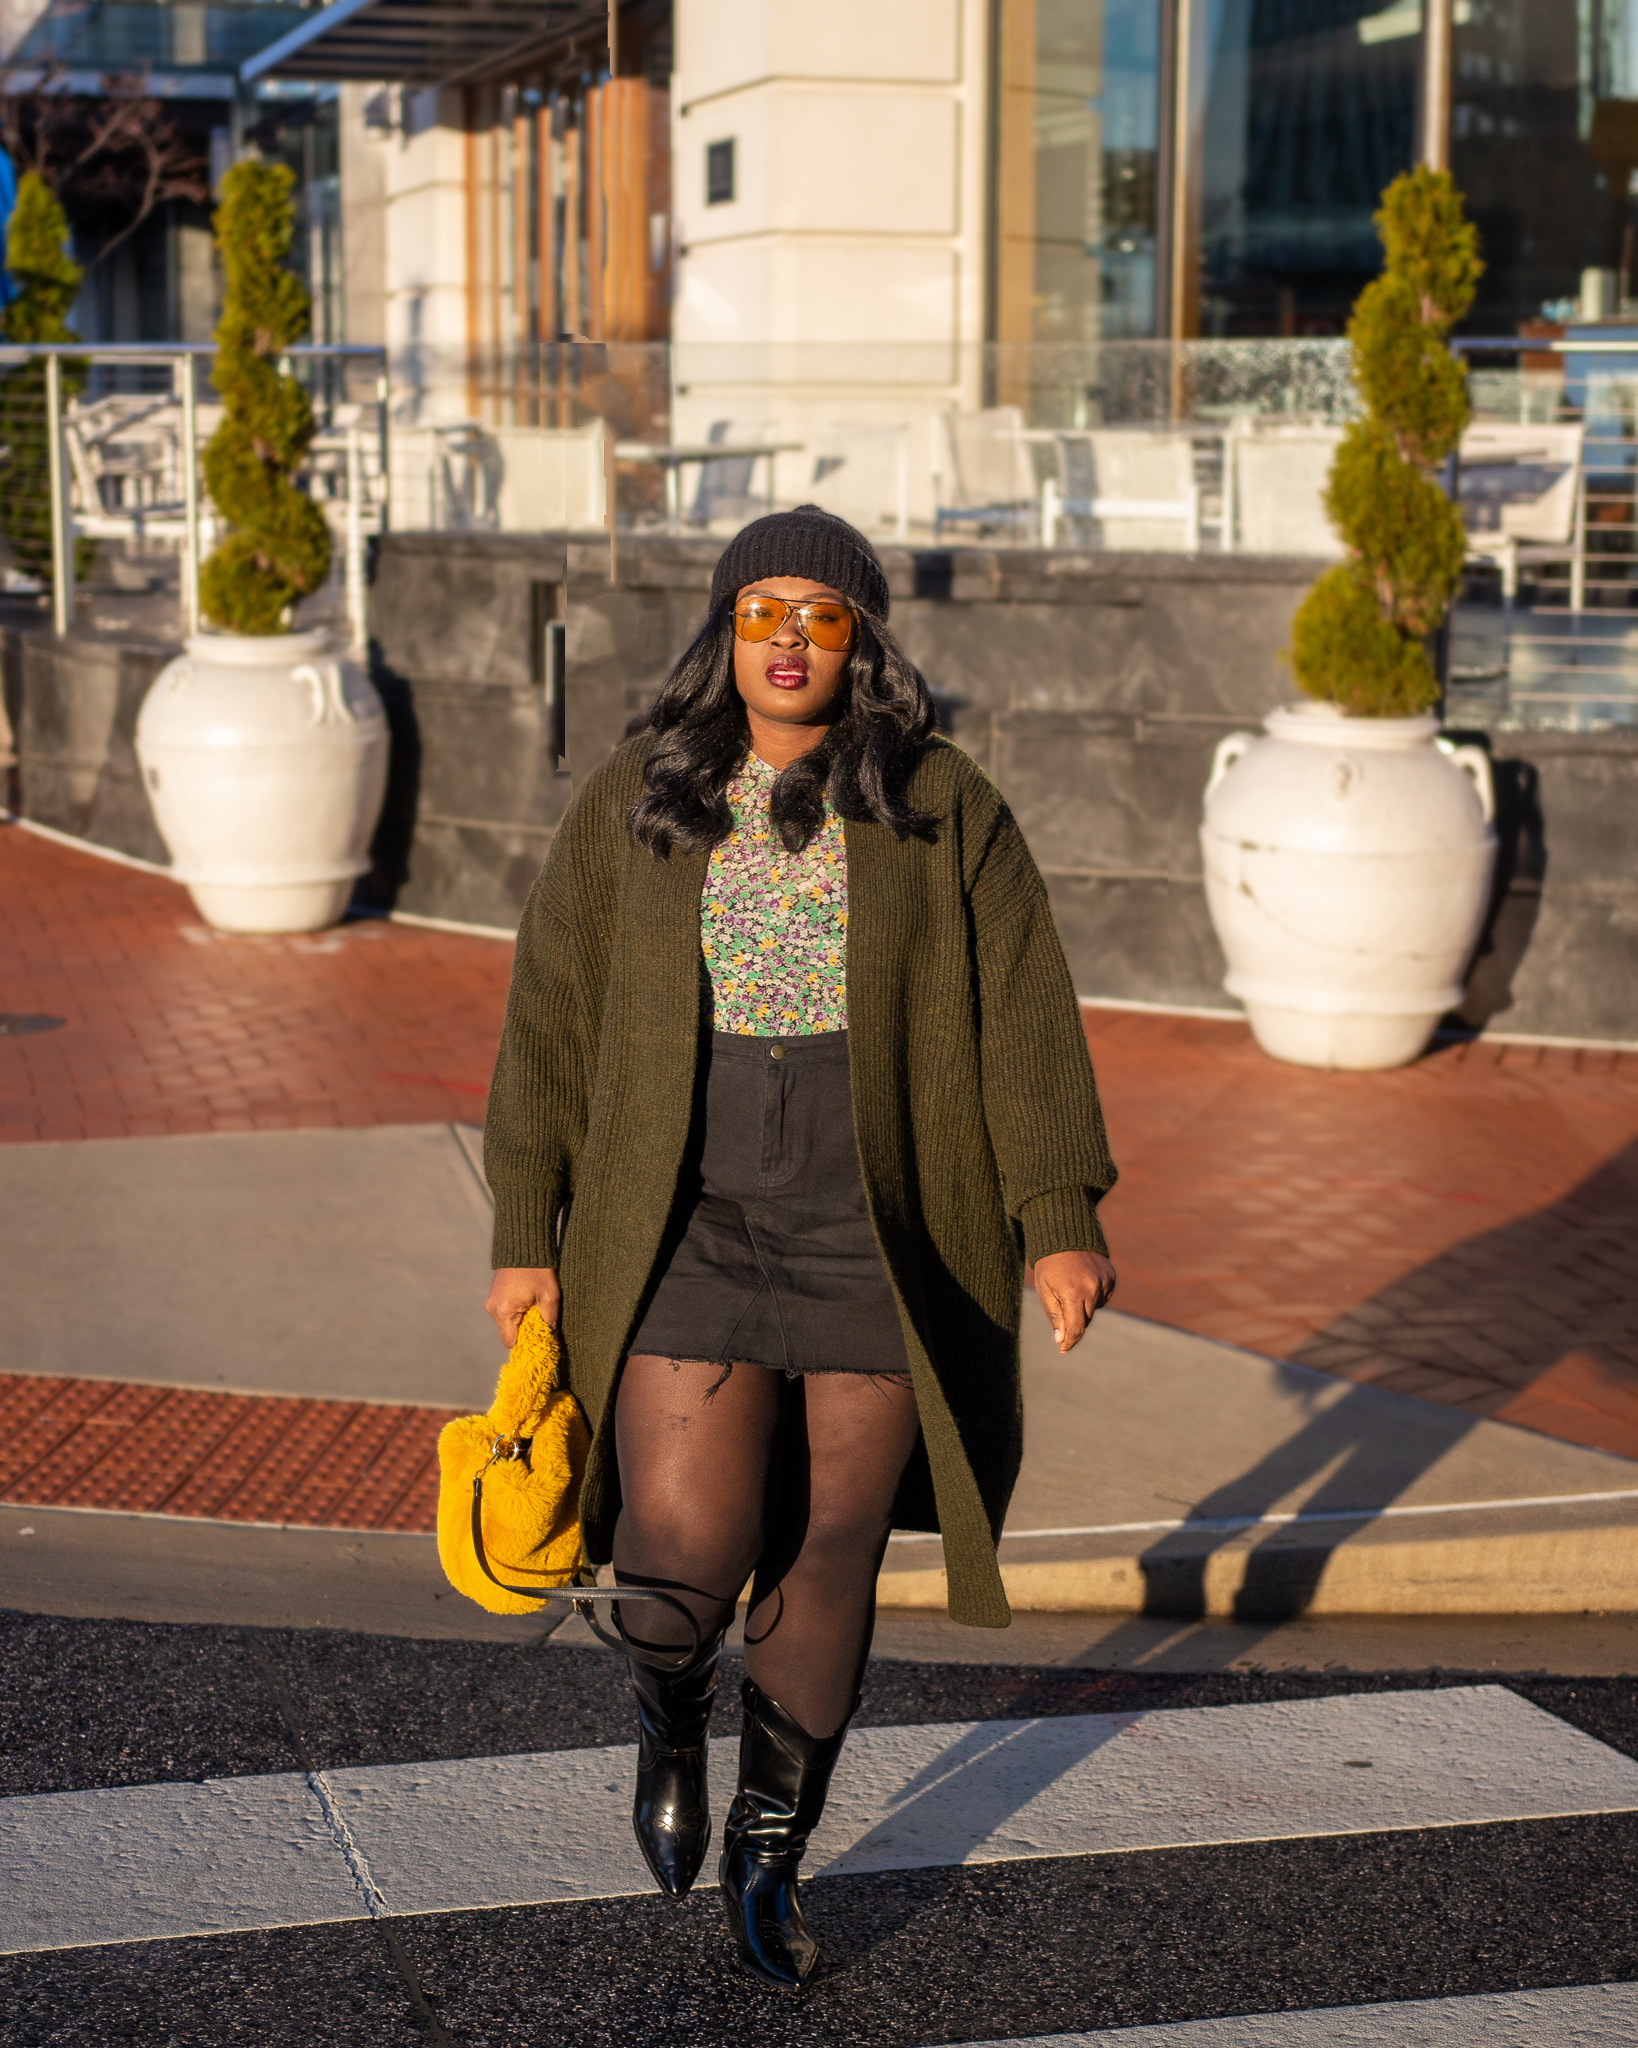 WINTER closet MUST HAVES from SUPPLECHIC a fashion and lifestyle blog based out of baltimore